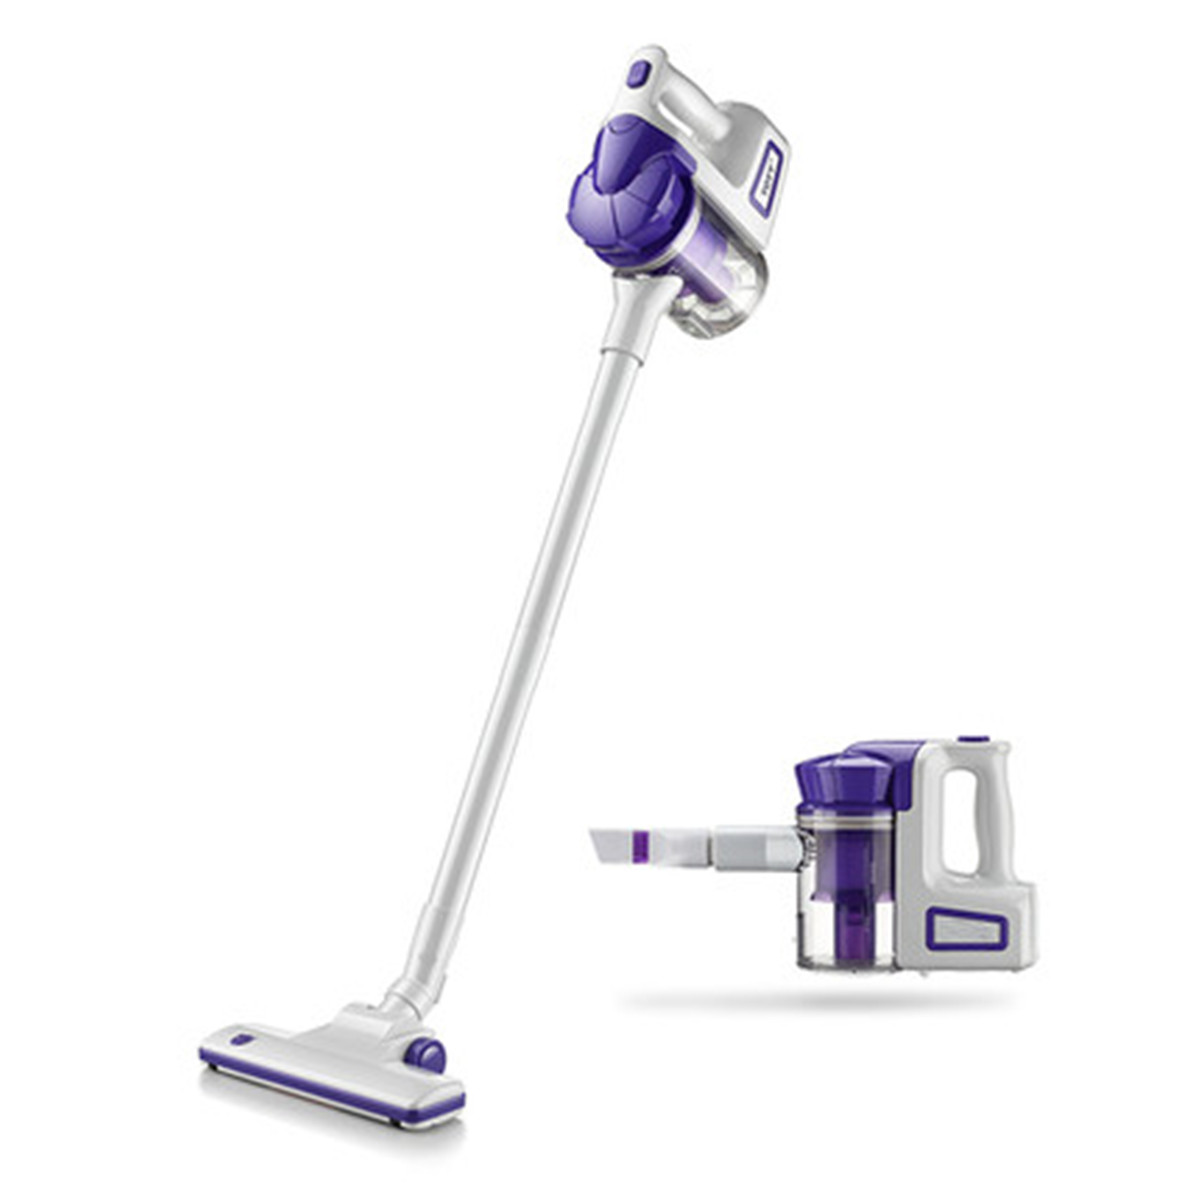 Household Electric Handheld Vacuums Stick Floor Cleaner Dust Machine Upraight Vacuum Cleaner